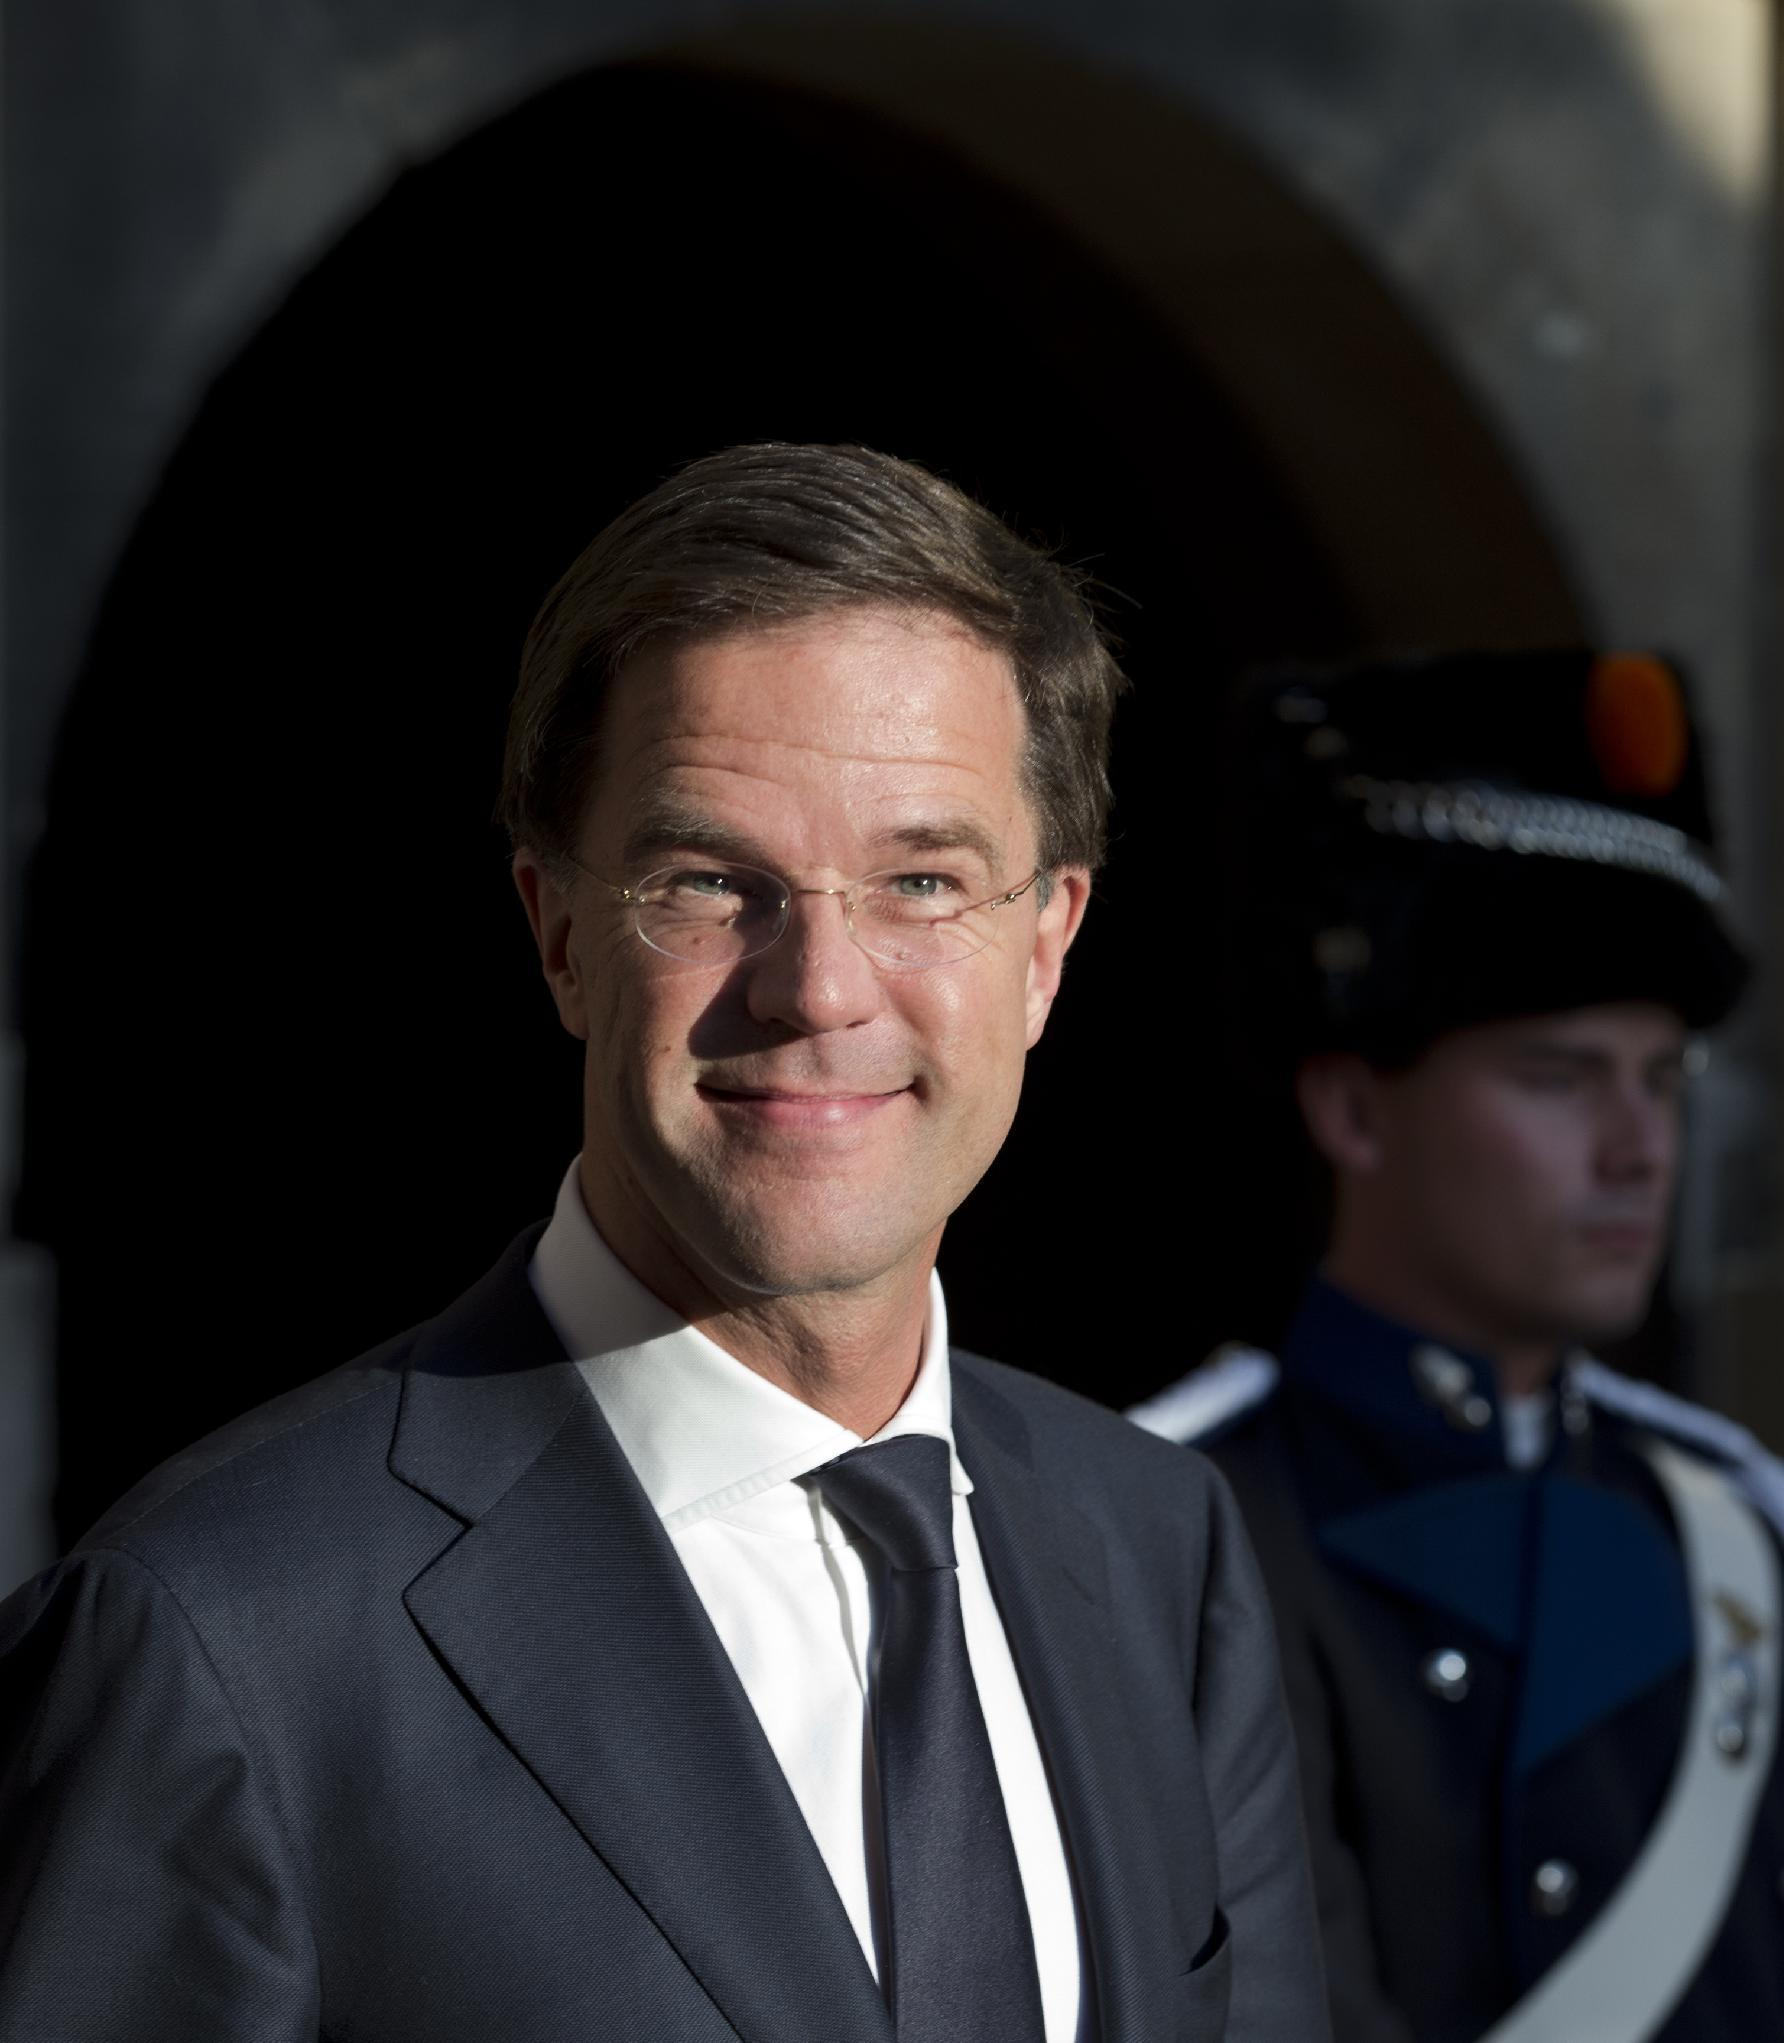 Crisis talks resume for Dutch coalition partners